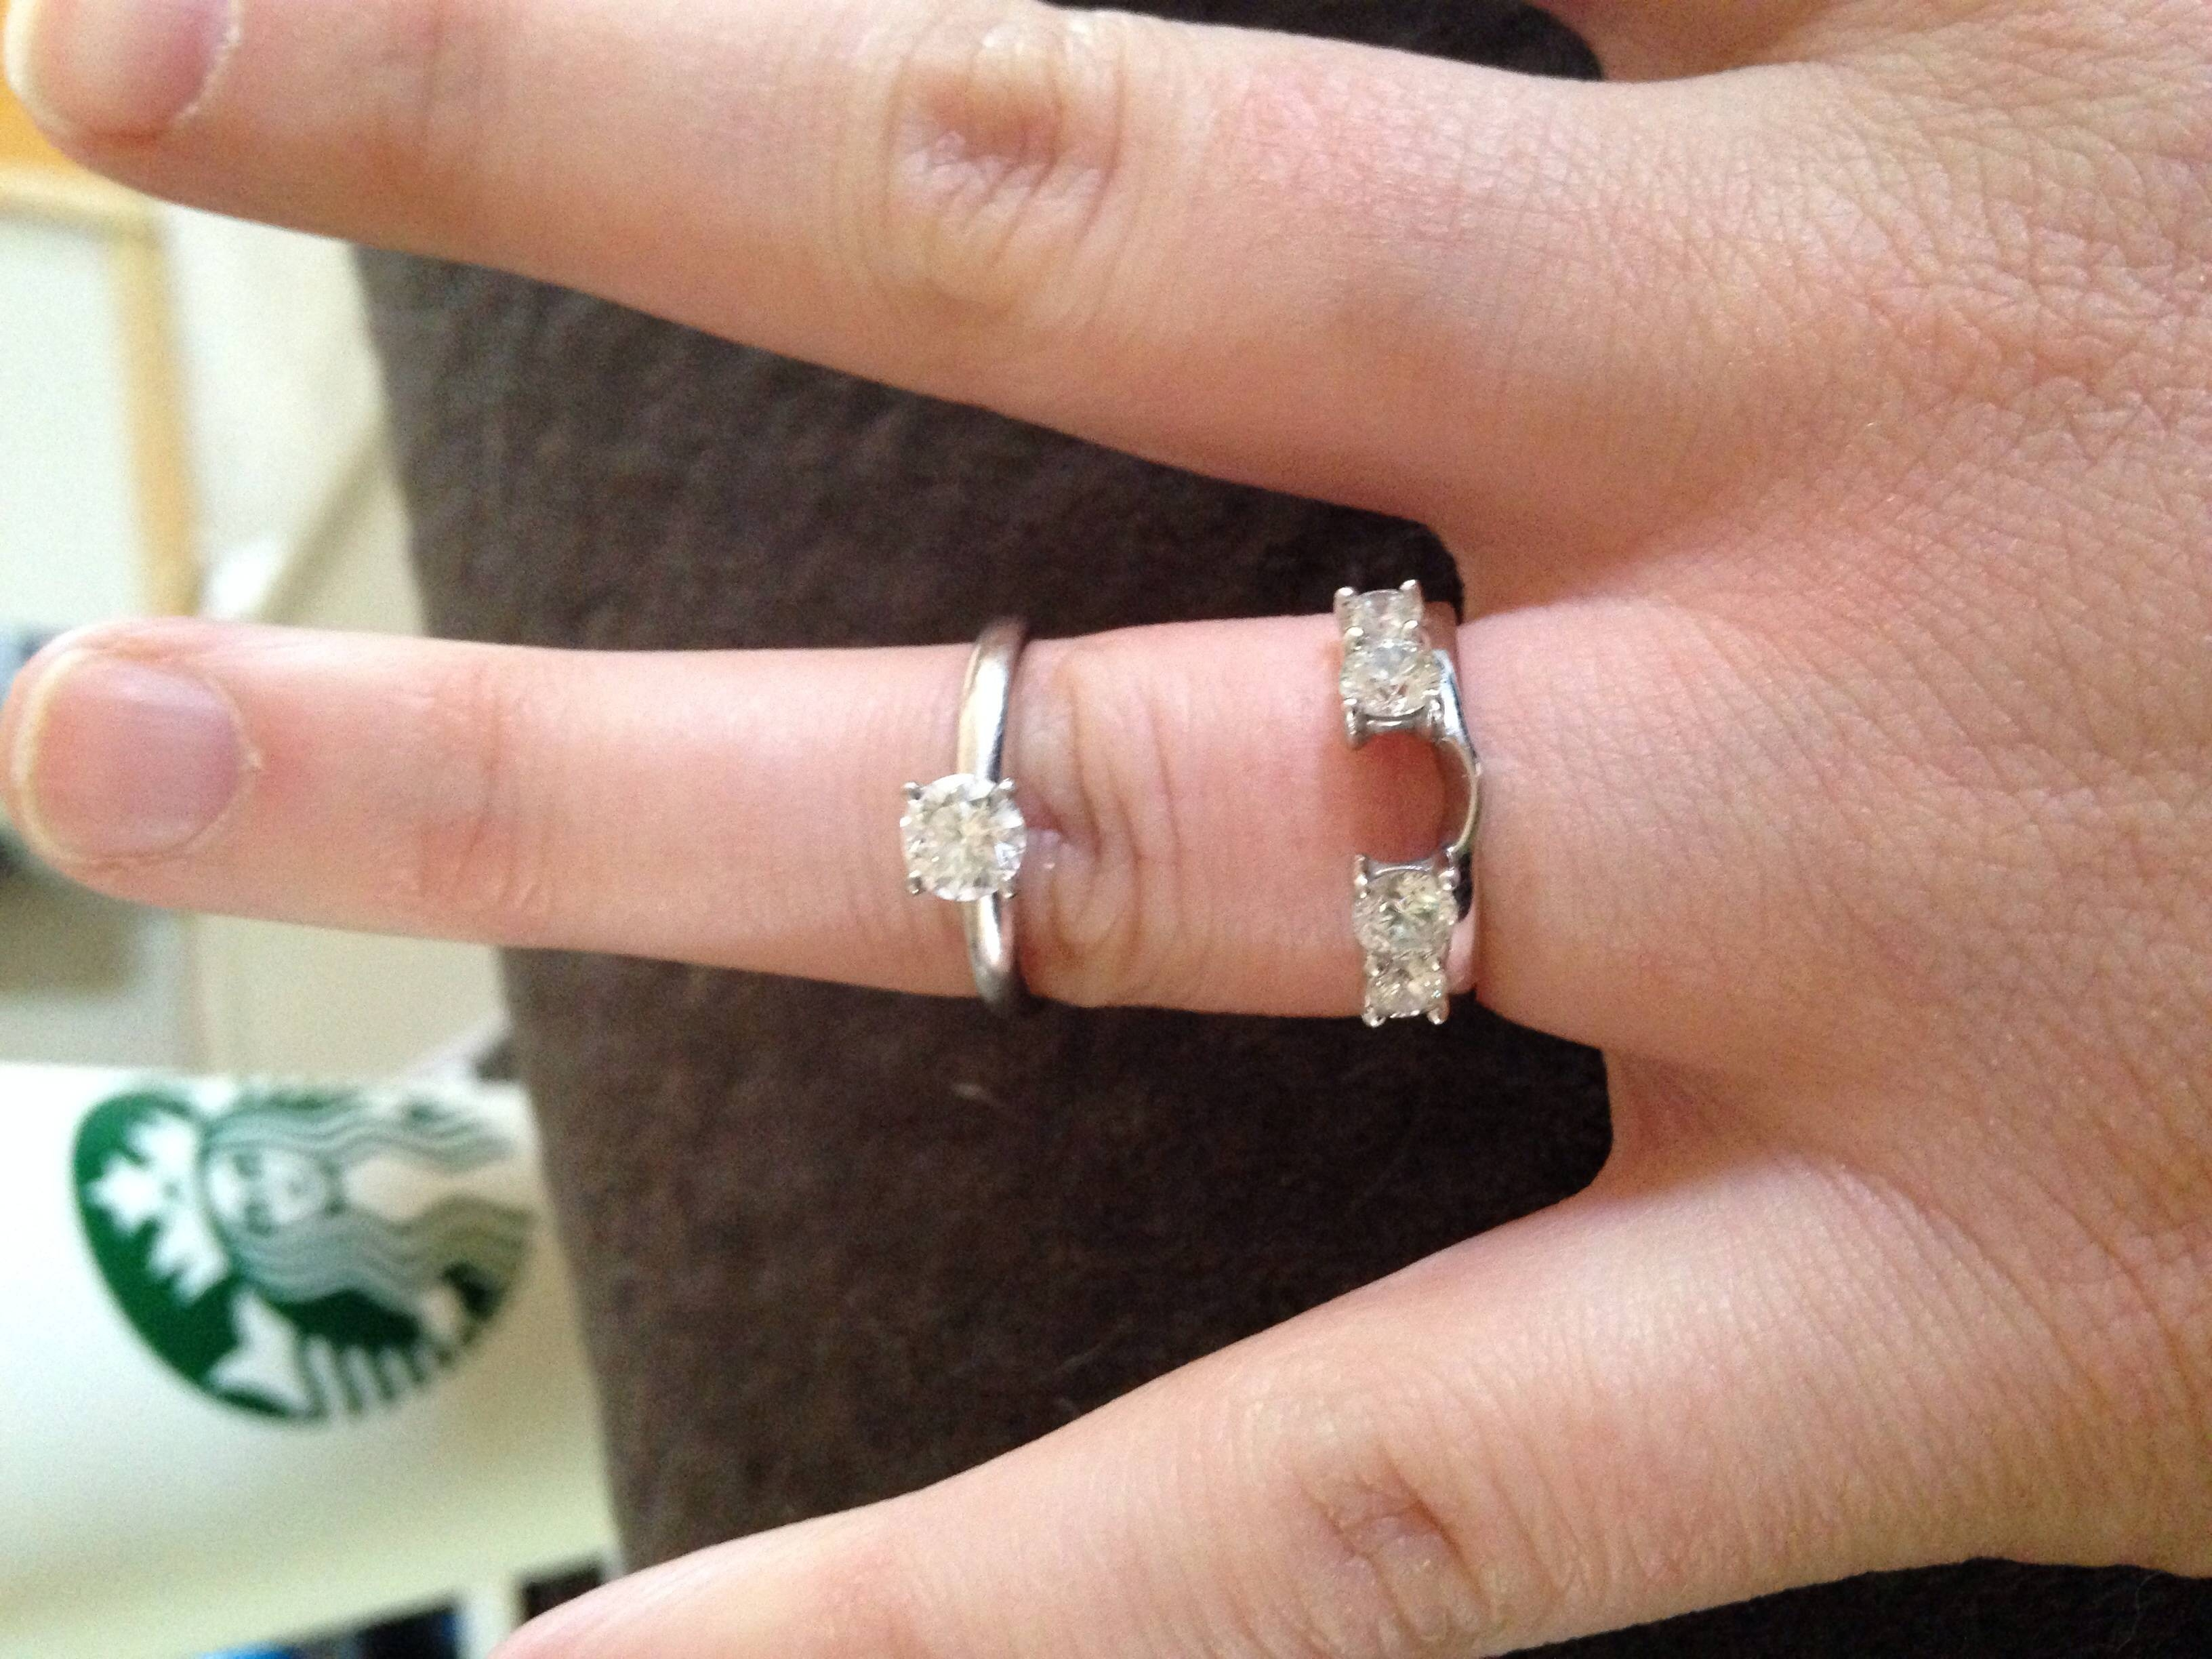 Show Us Your Wedding Band For Solitaire Engagement Rings! – Weddingbee Within Latest Solitaire Engagement Rings And Wedding Bands (View 6 of 15)